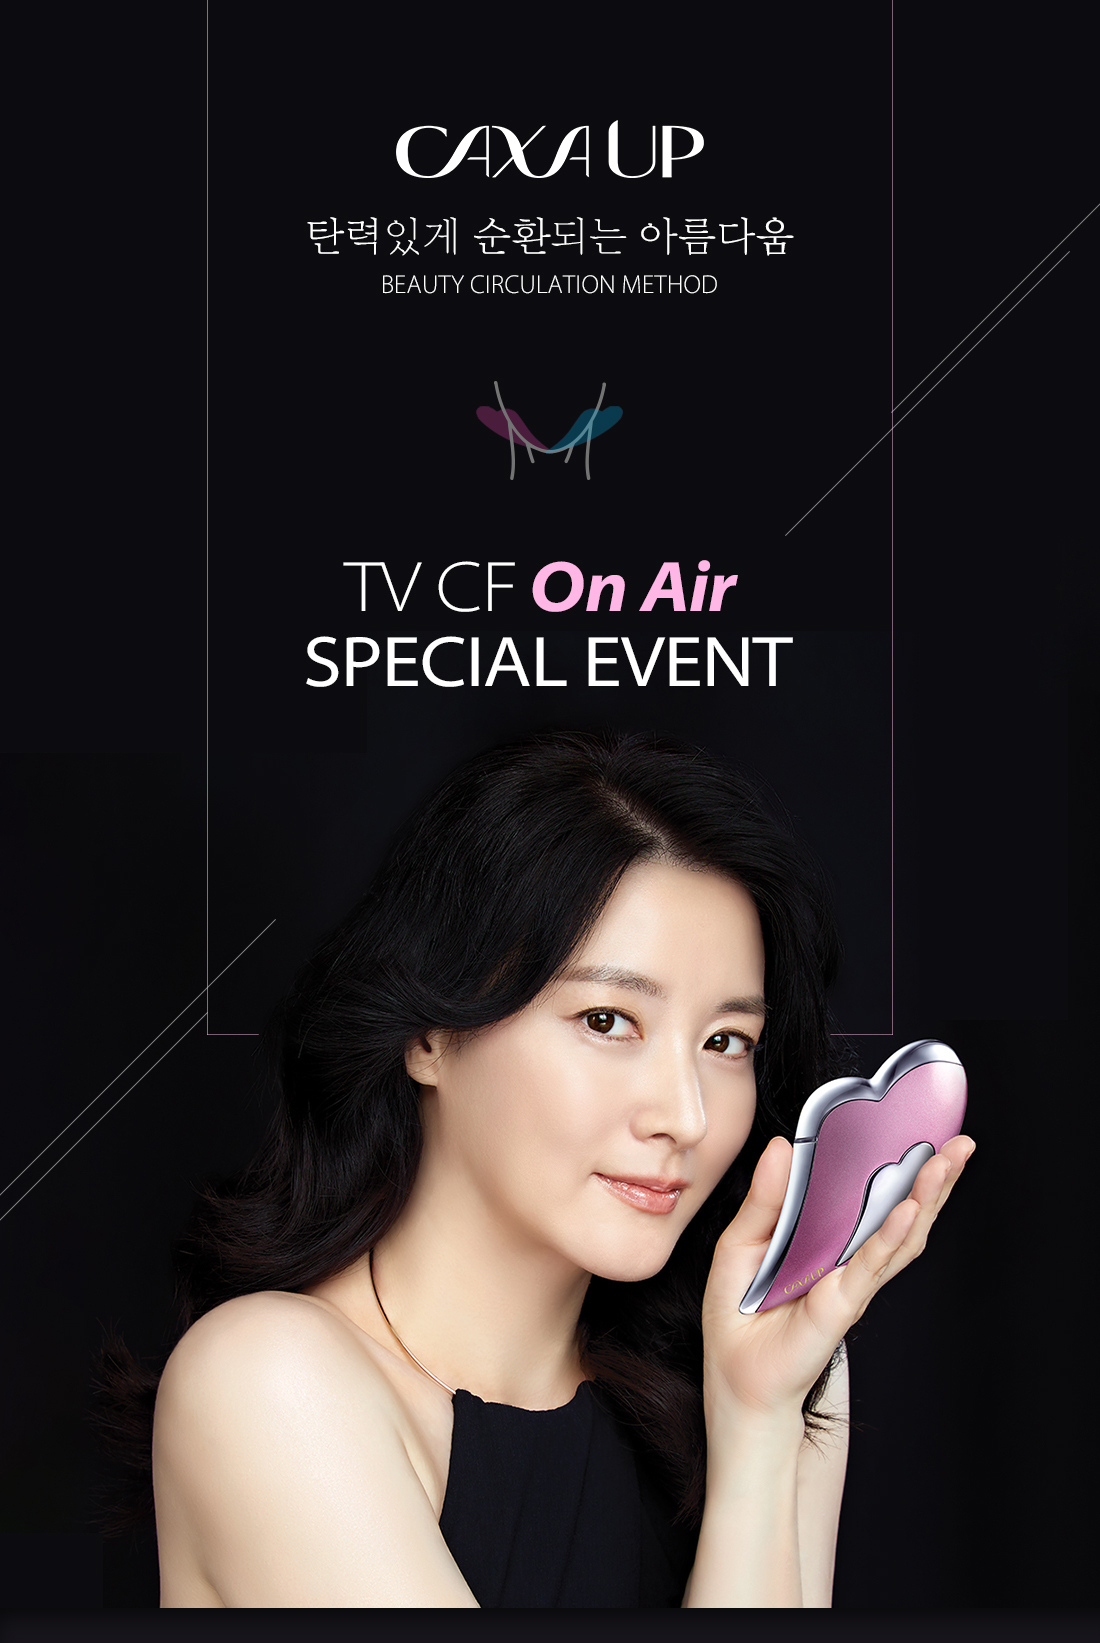 CAXAUP 탄력있게 순환되는 아름다움 - TV CF On Air SPECIAL EVENT